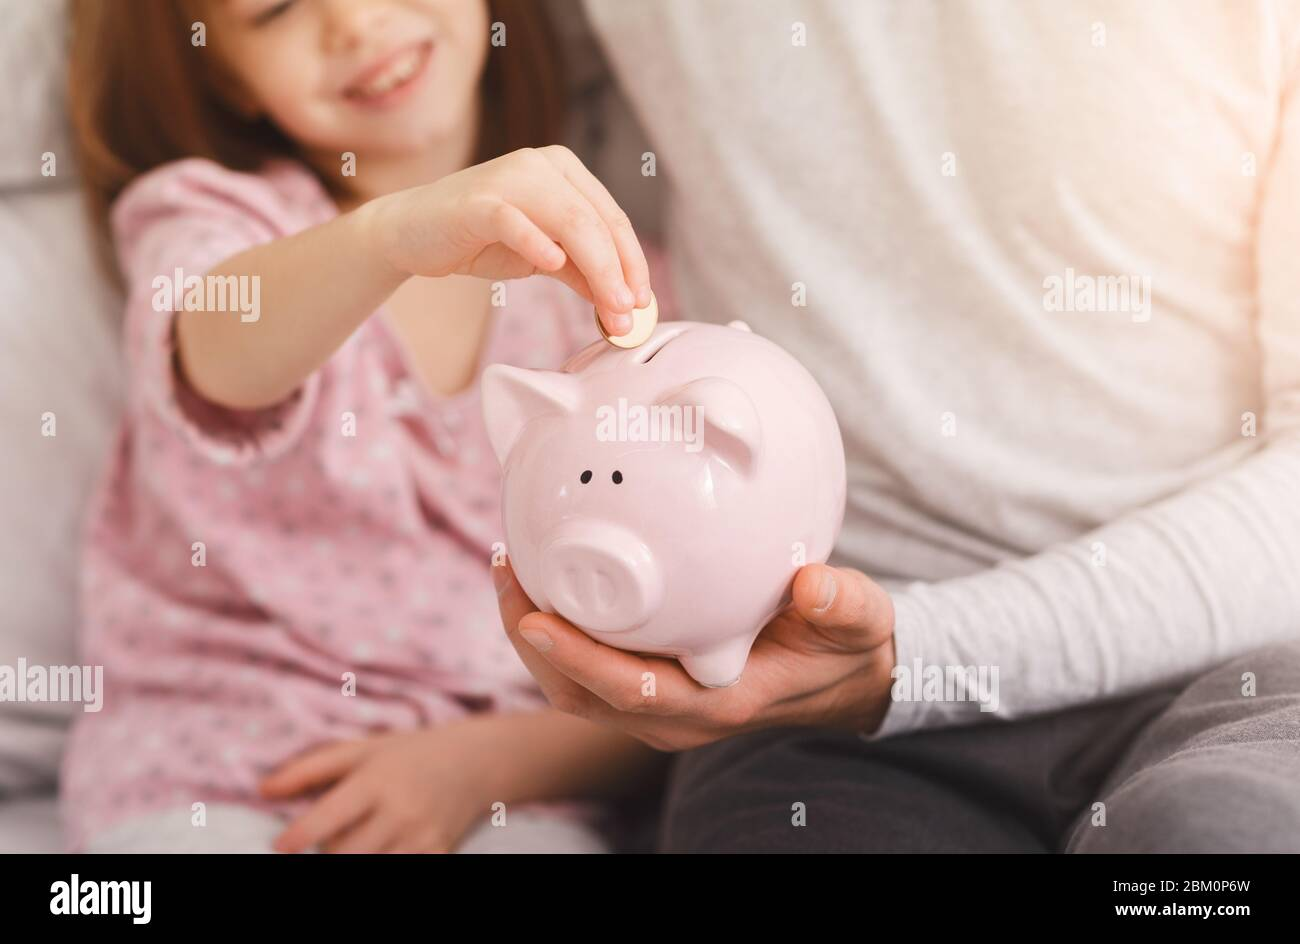 Cropped of girl putting money in piggy bank Stock Photo